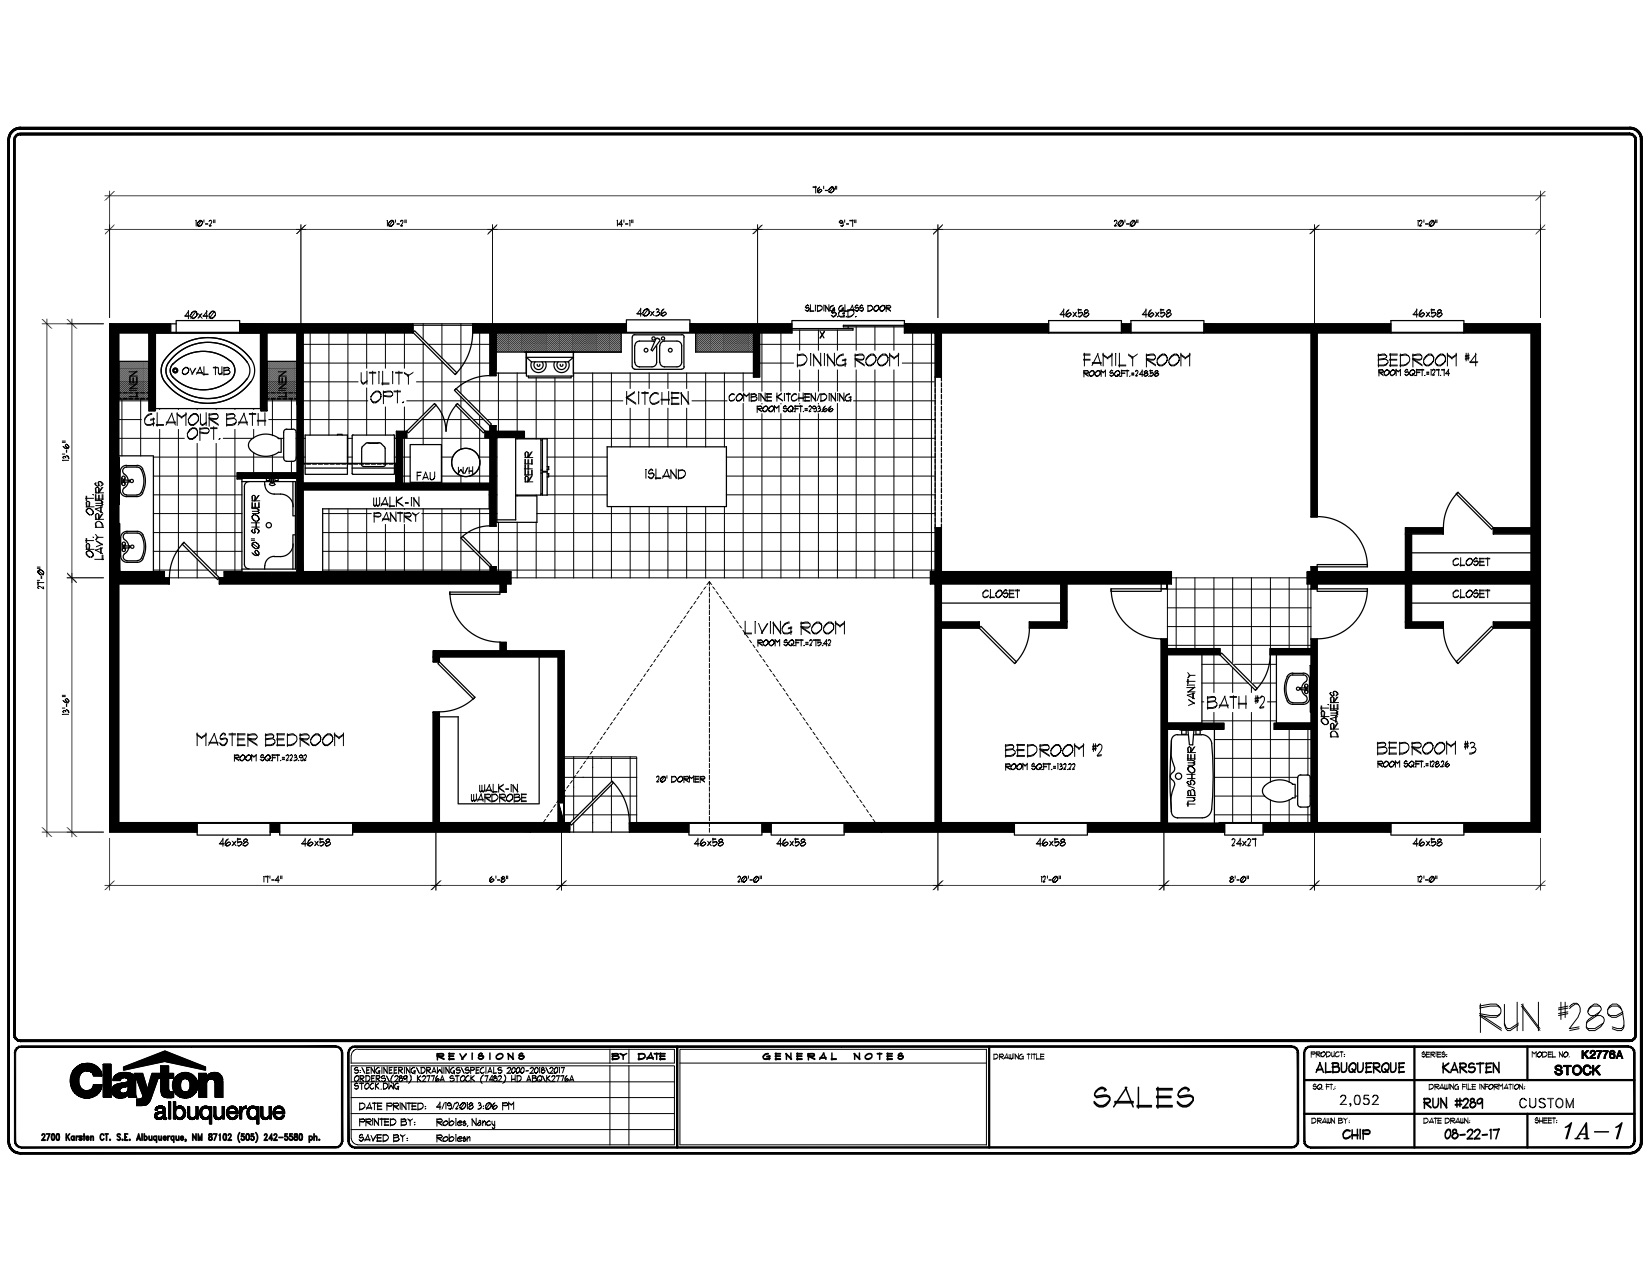 Homes Direct Modular Homes - Model K2776A - Floorplan